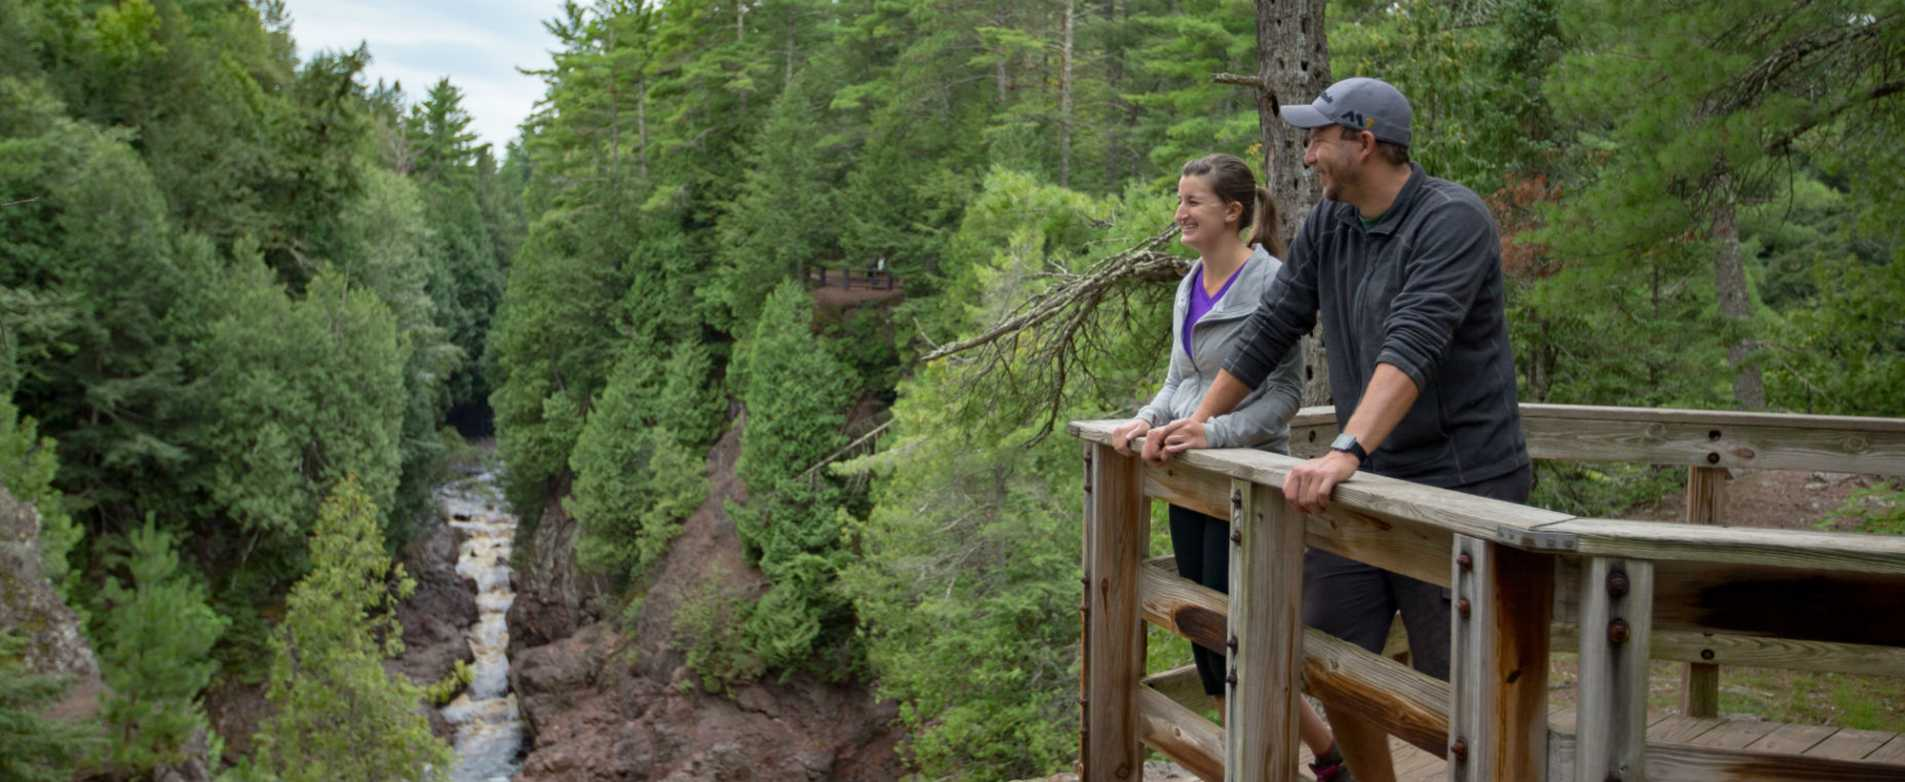 Couple Enjoying Overlook at Copper Falls State Park